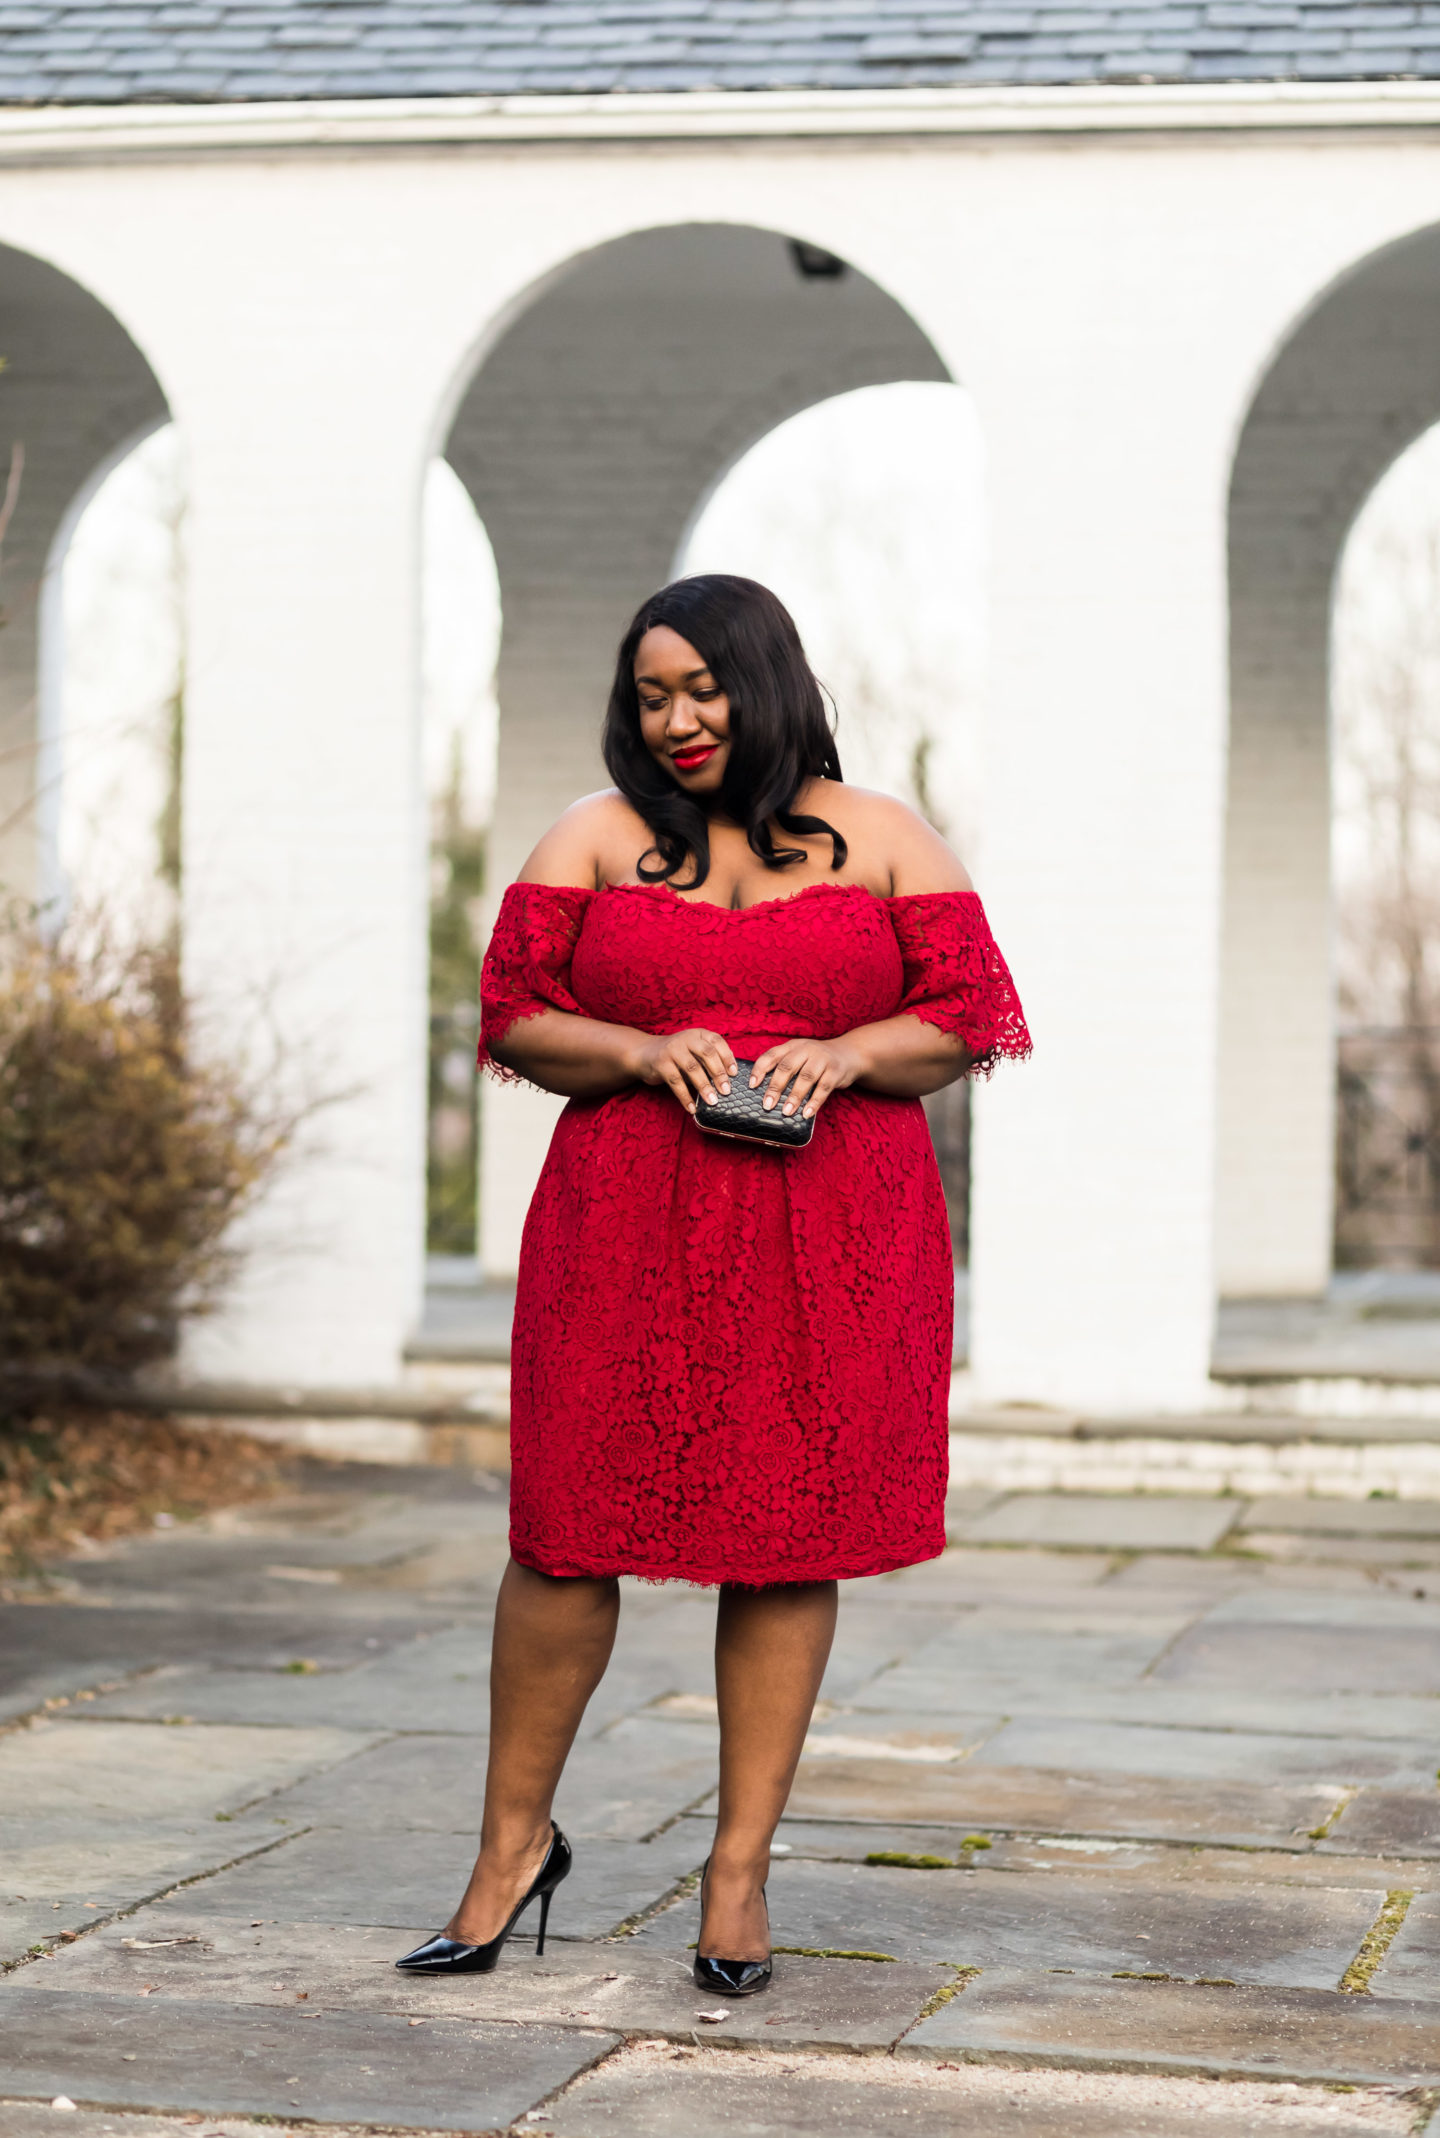 a37d6a200eb Plus Size Red Dress Outfit - Shapely Chic Sheri - Plus Size Fashion ...